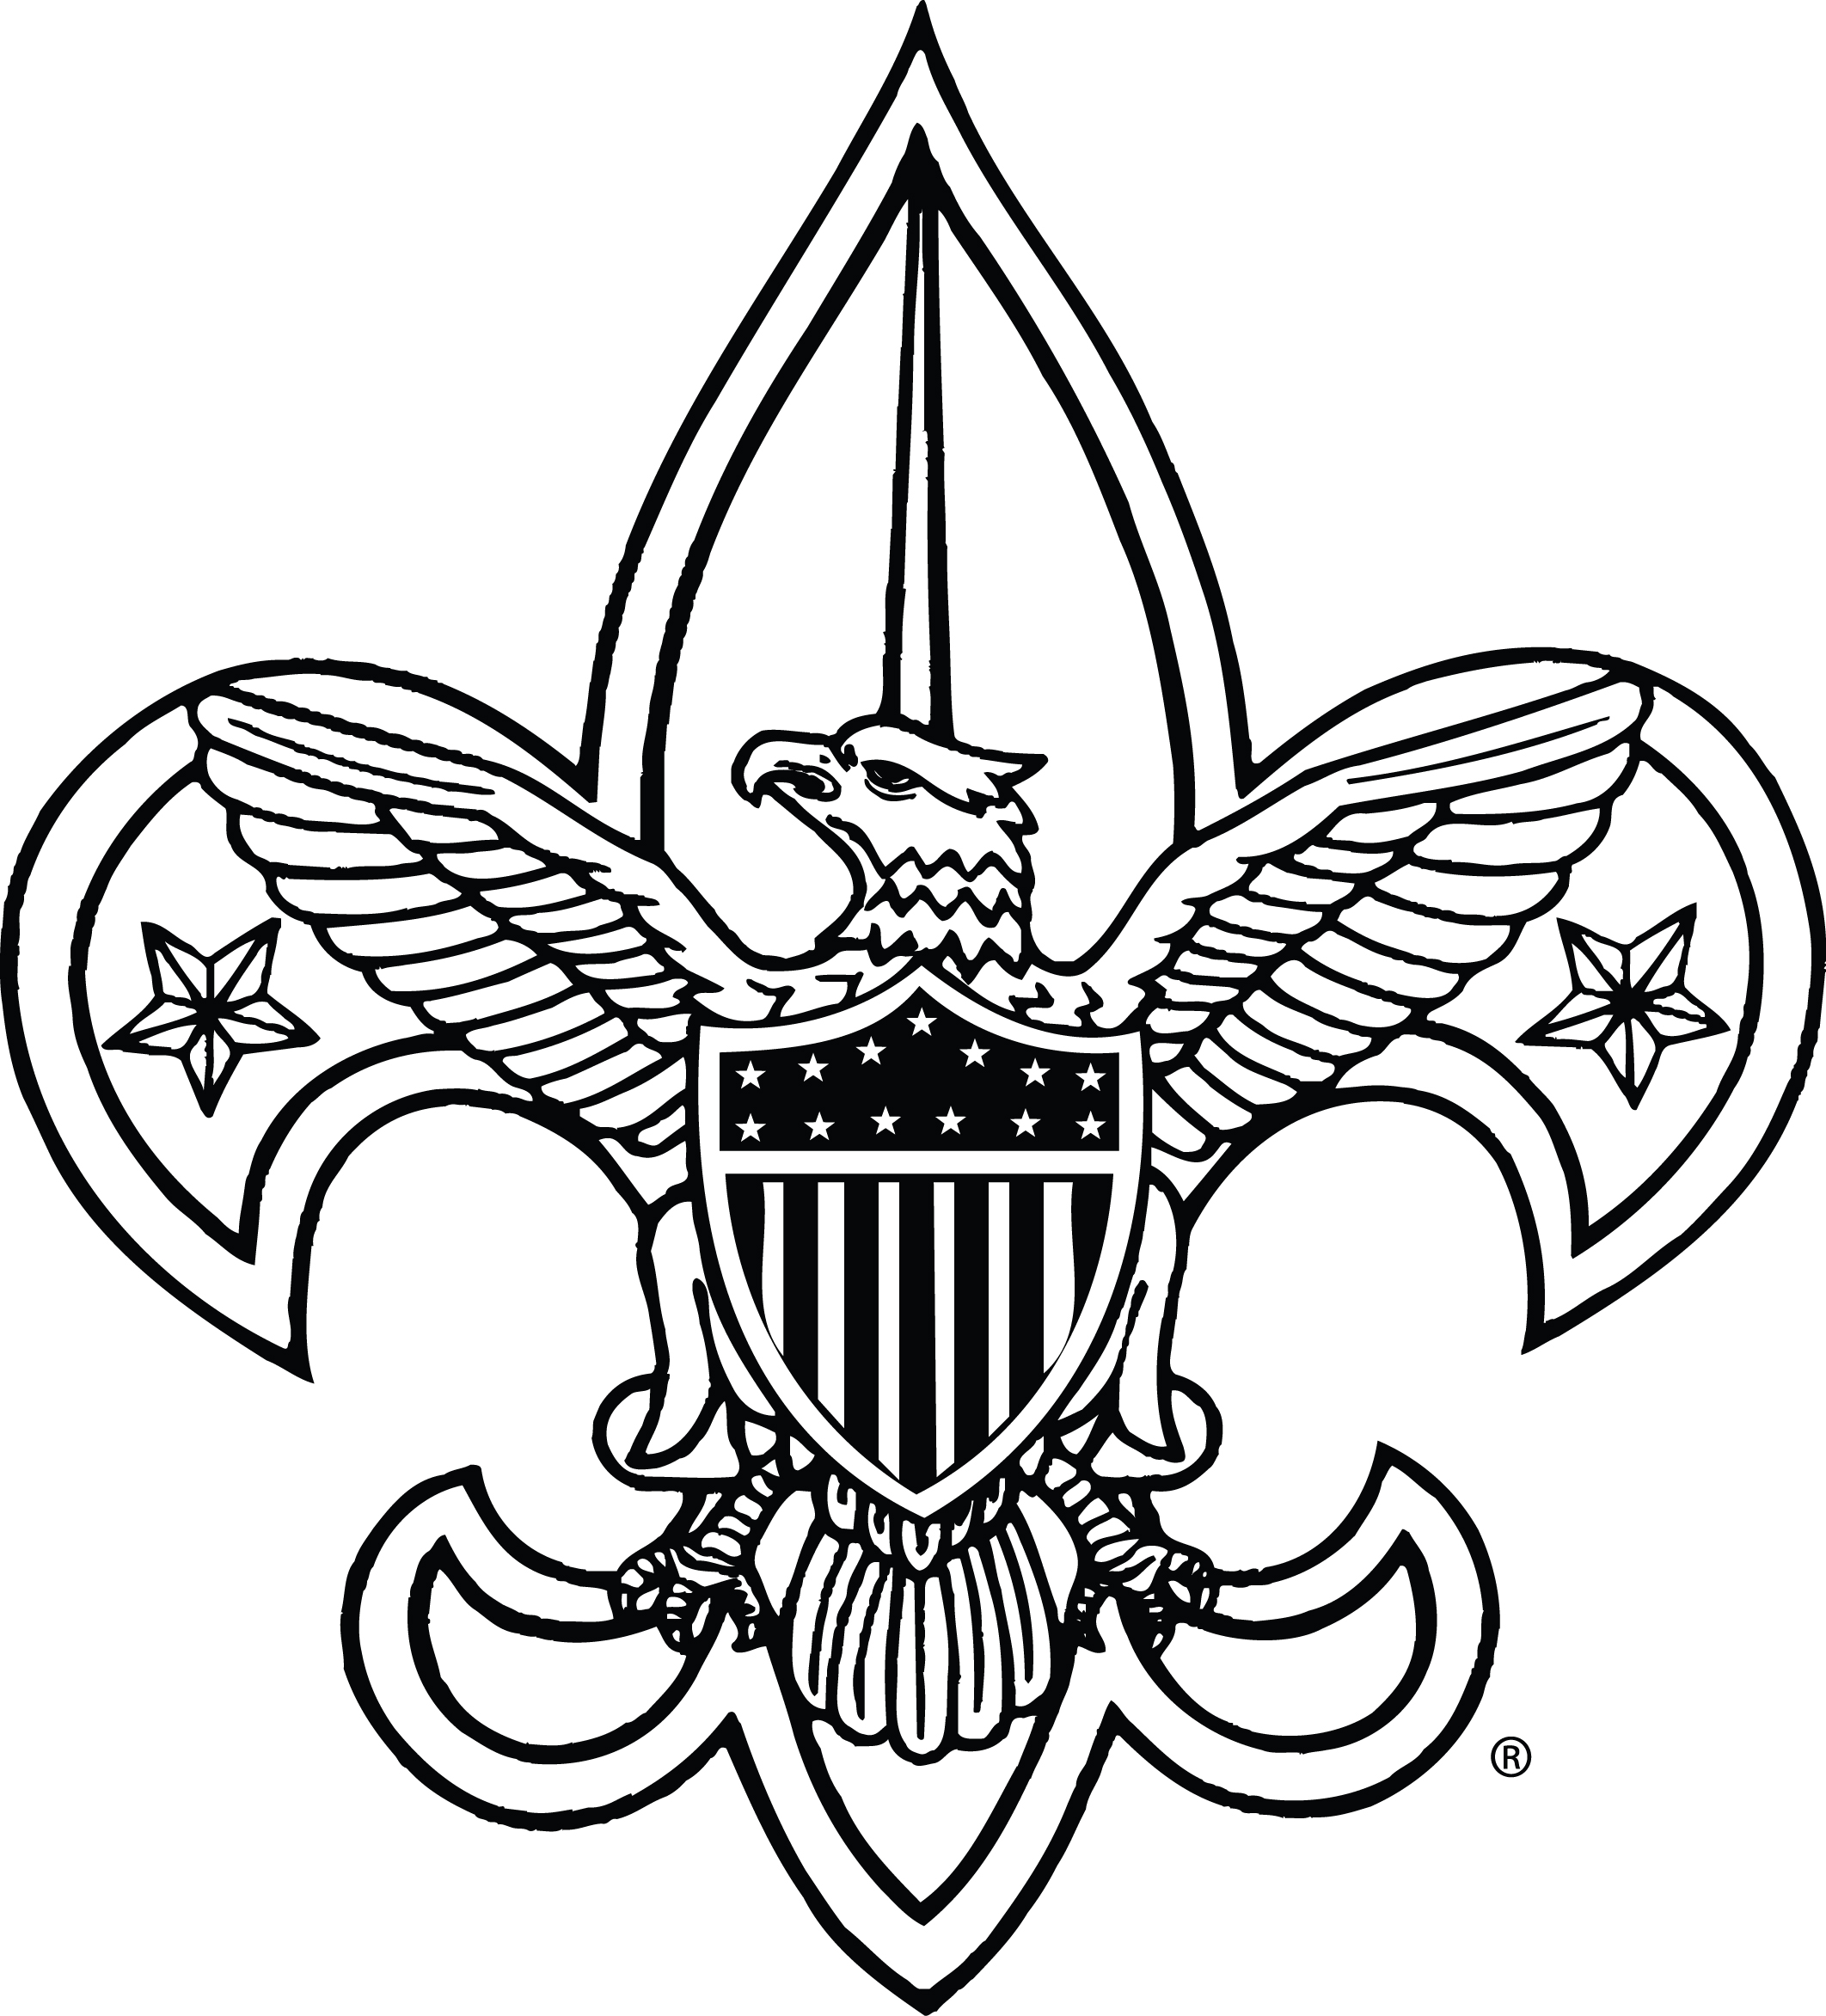 Boy scout shield clipart with no eagle clip art library stock Boy Scout Symbol Images | Free download best Boy Scout Symbol Images ... clip art library stock